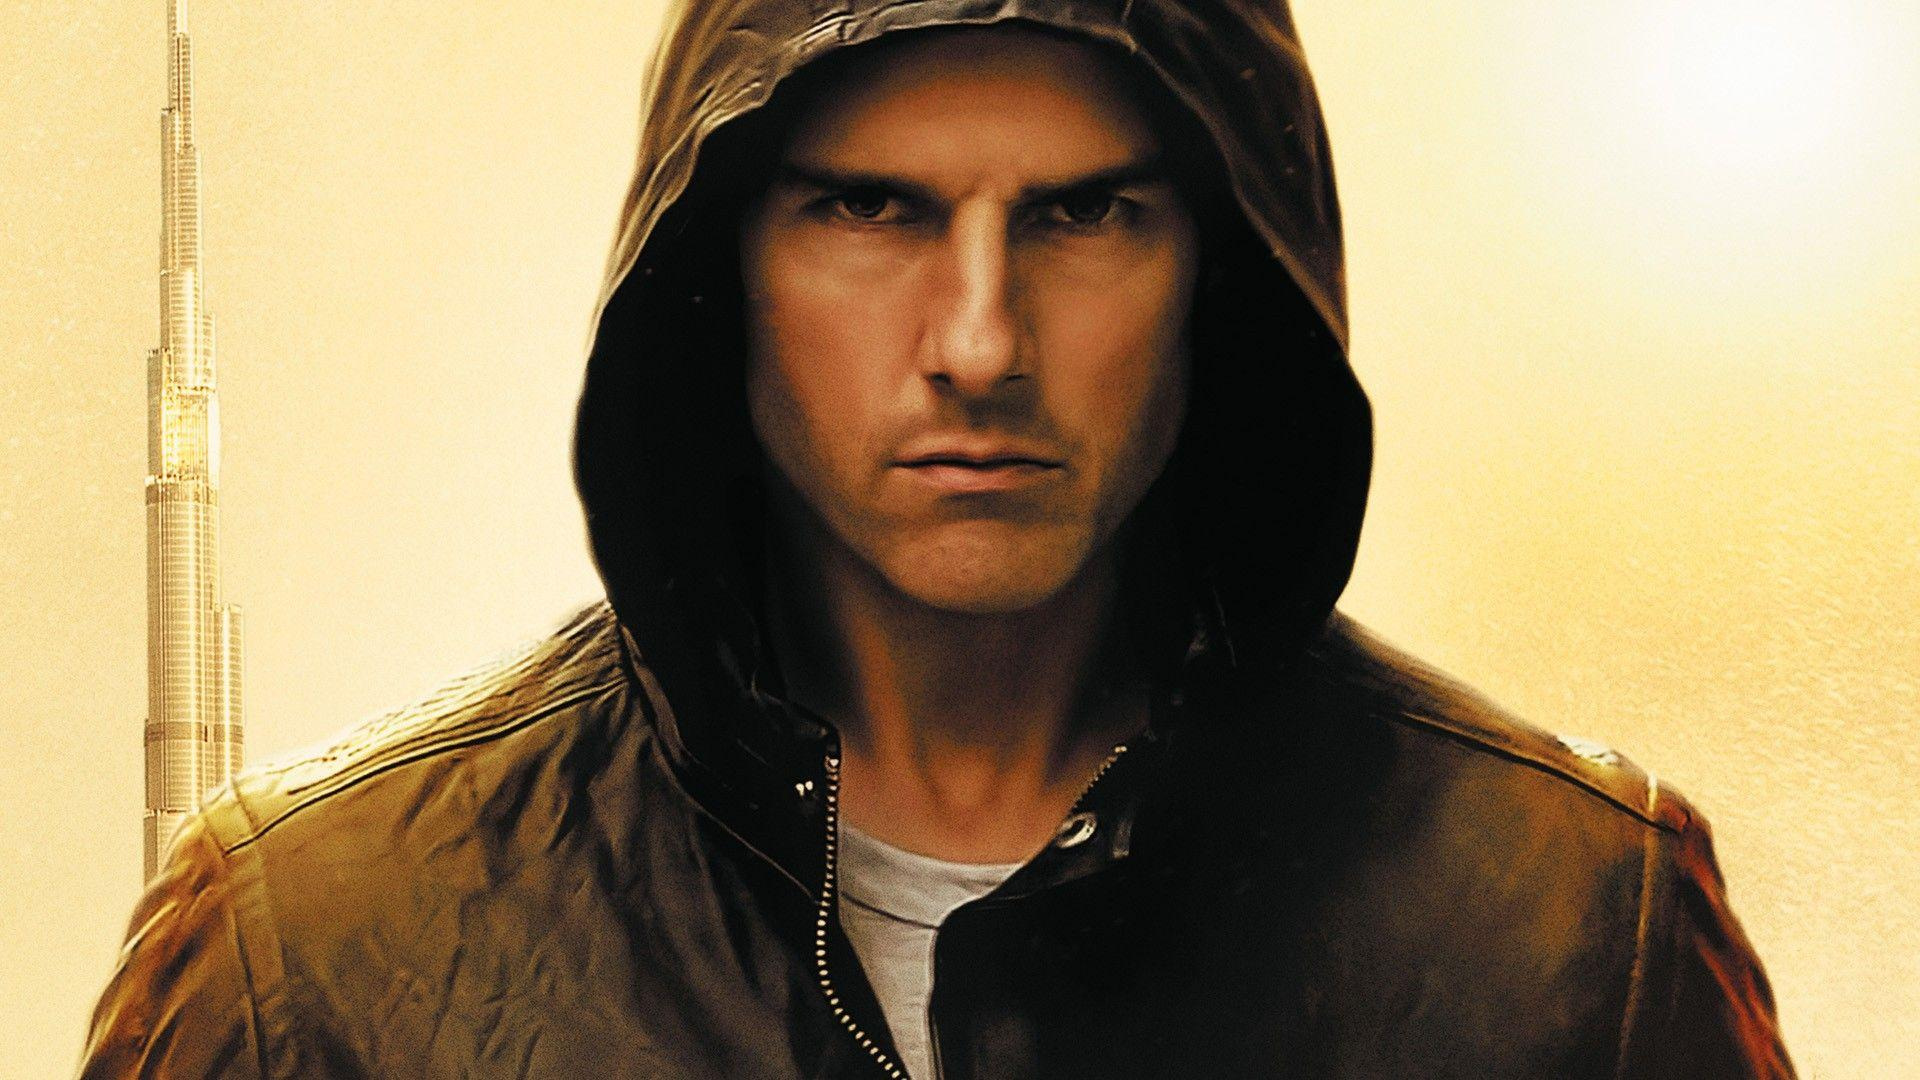 tom cruise wallpapers Archives